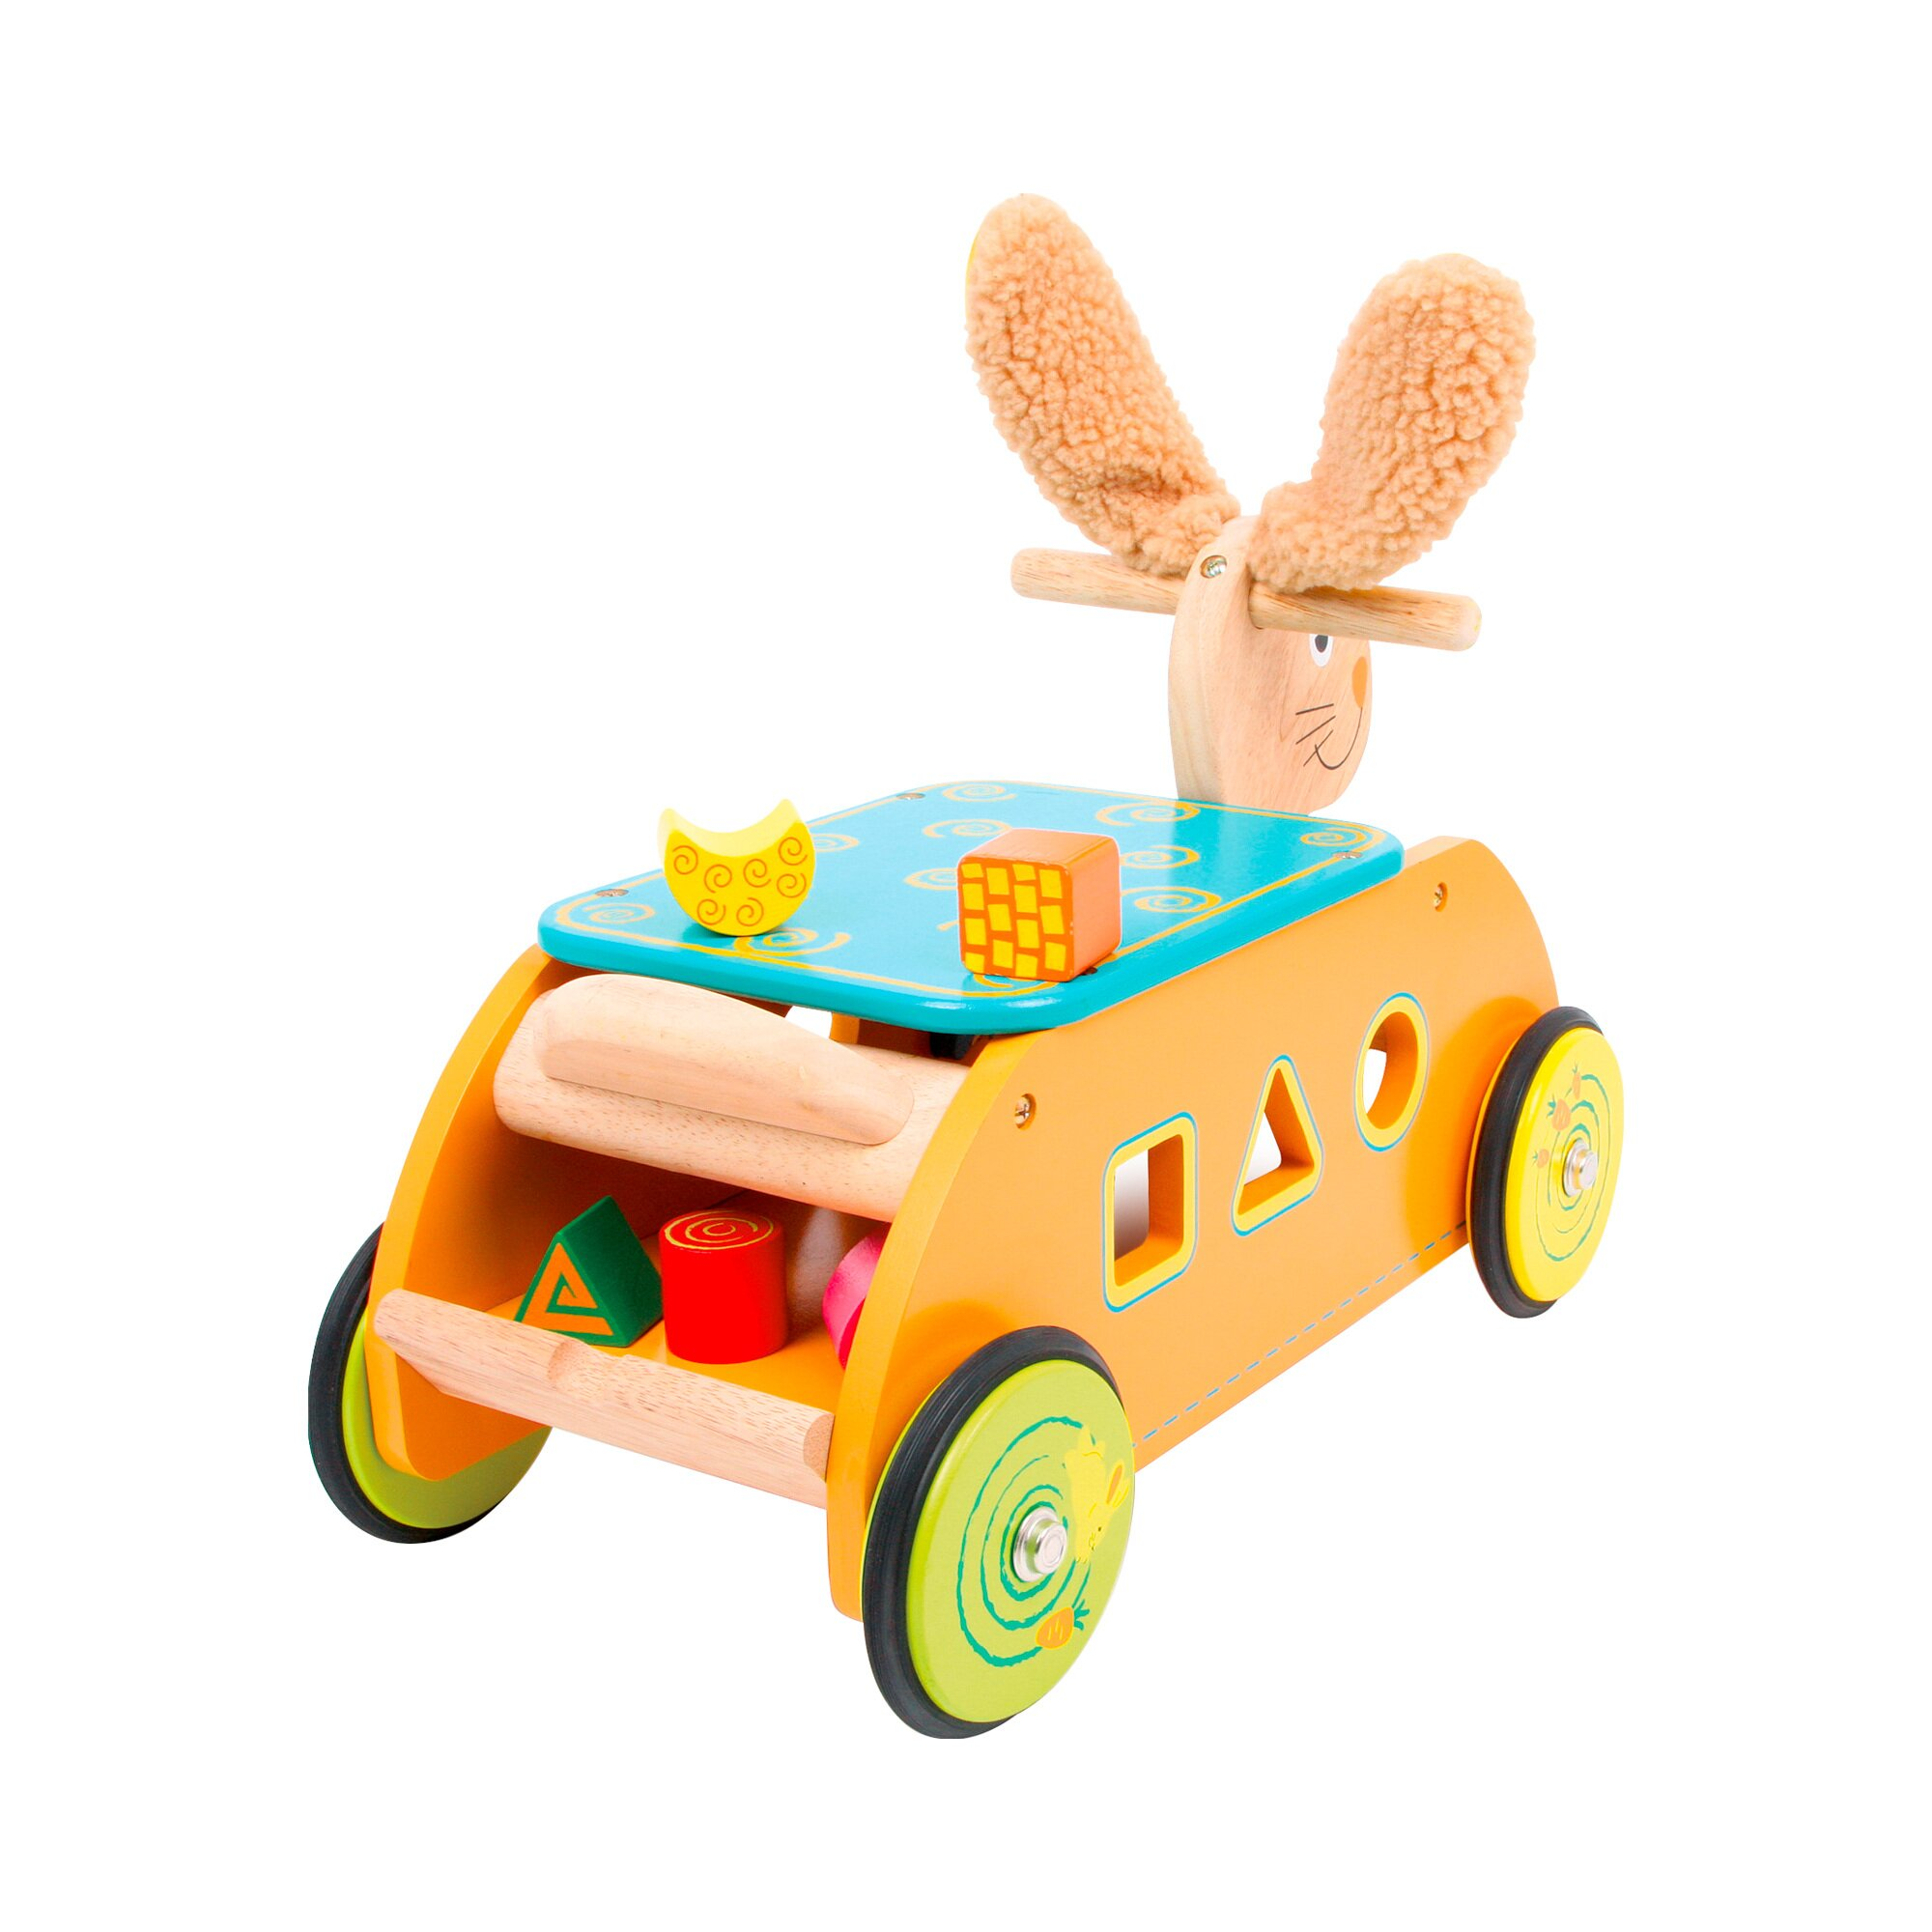 small-foot-motorikwagen-hase-aus-holz